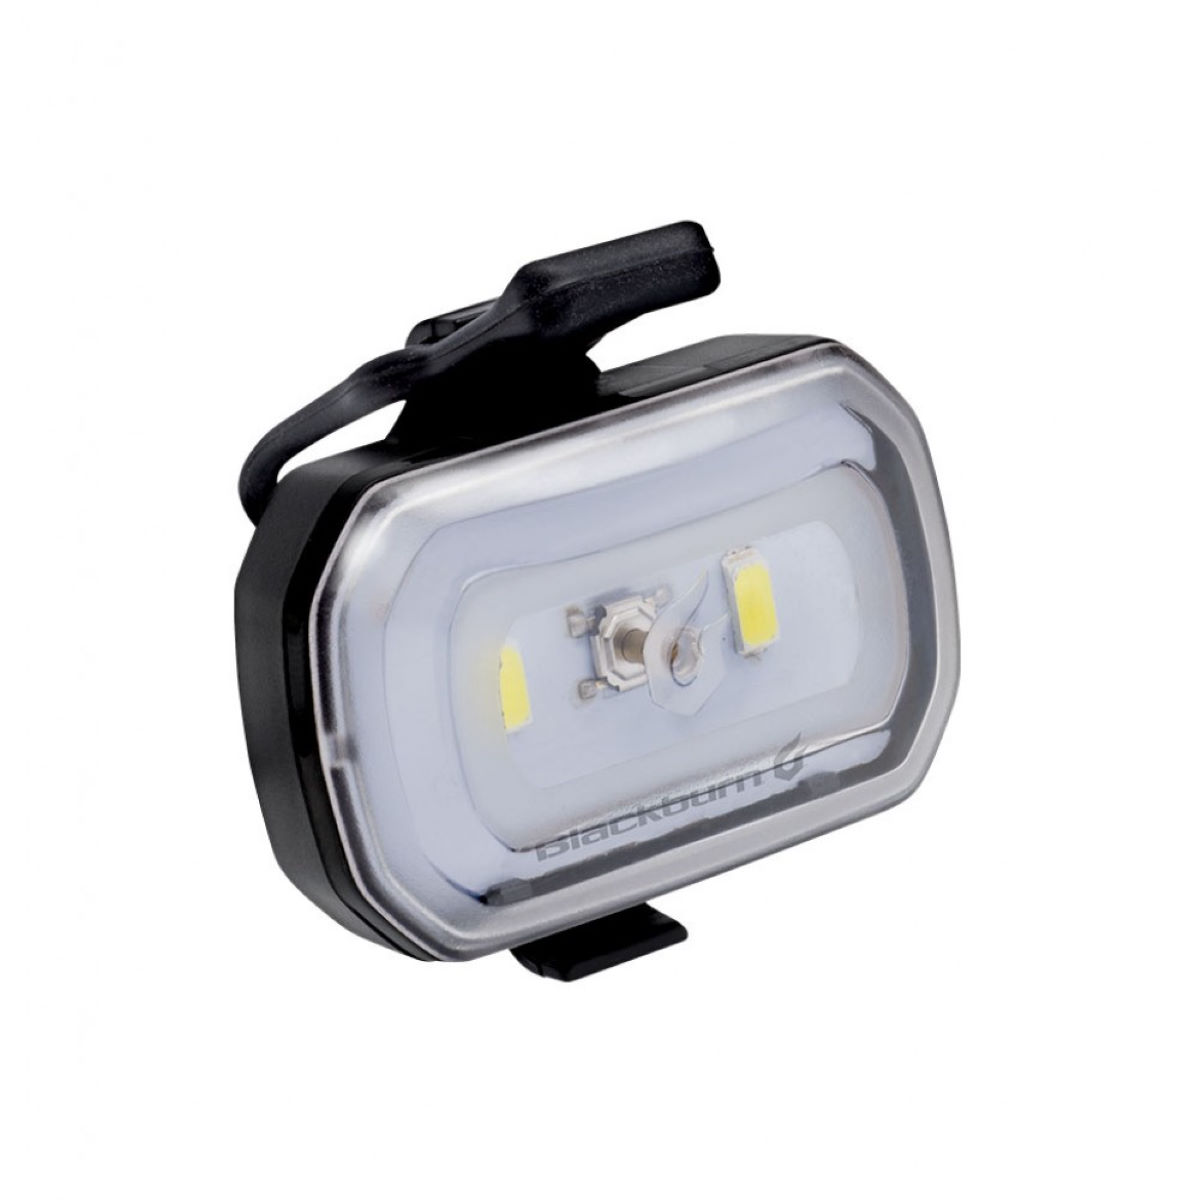 Blackburn Click USB Rechargeable Front Light - Luces delanteras